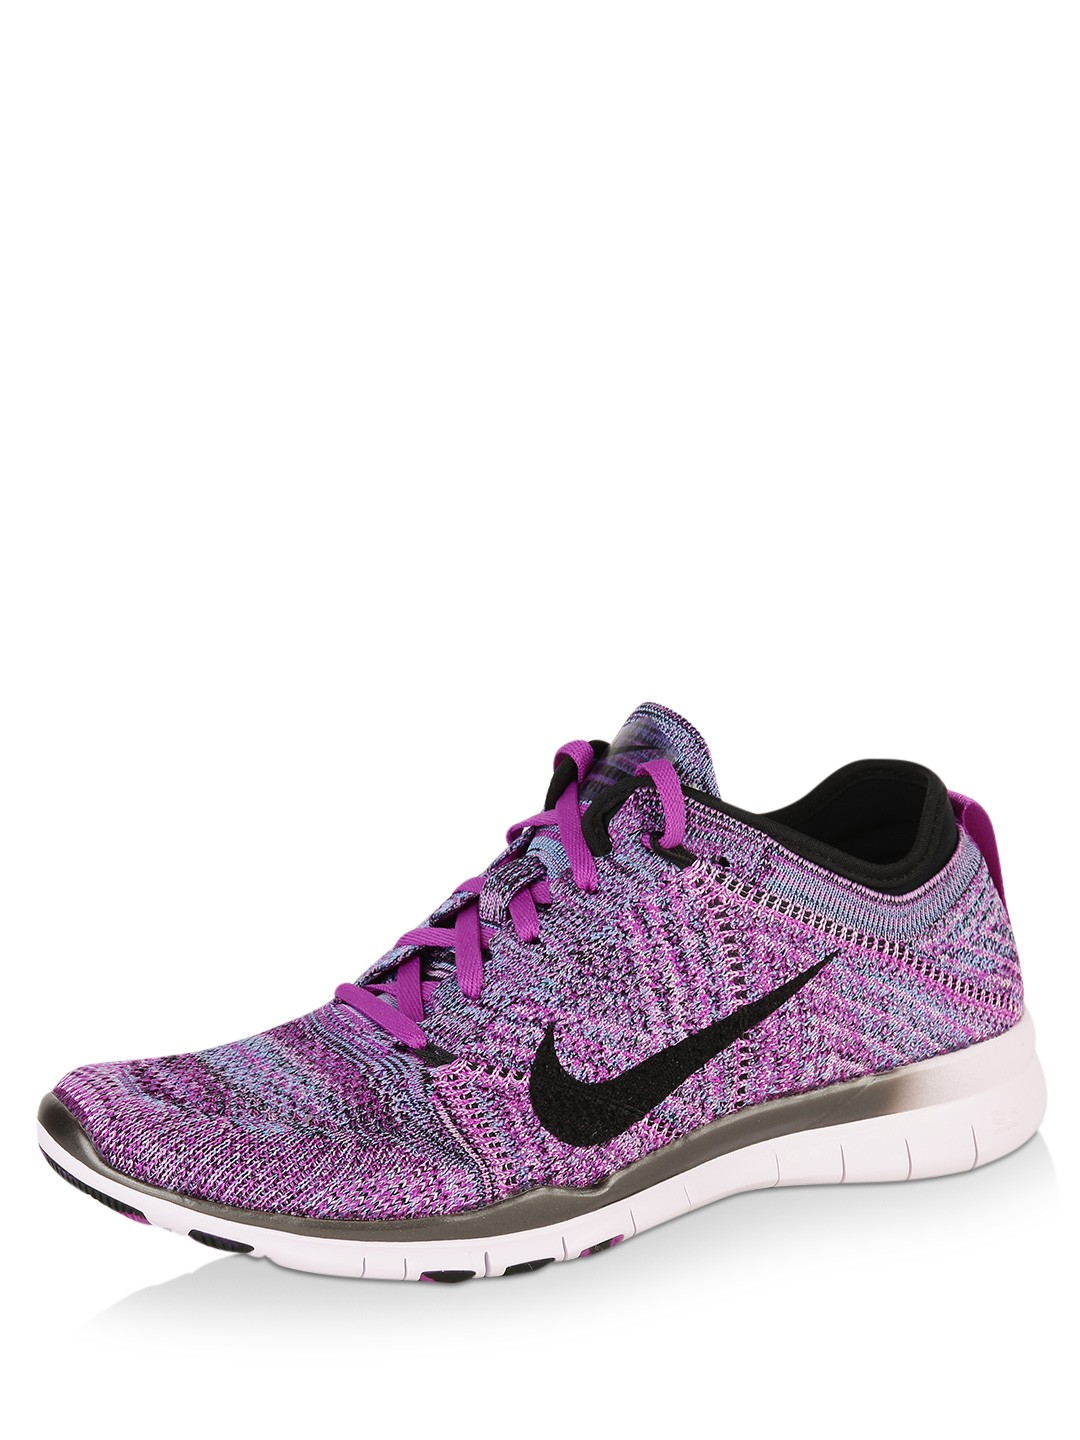 nike free tr flyknit trainer